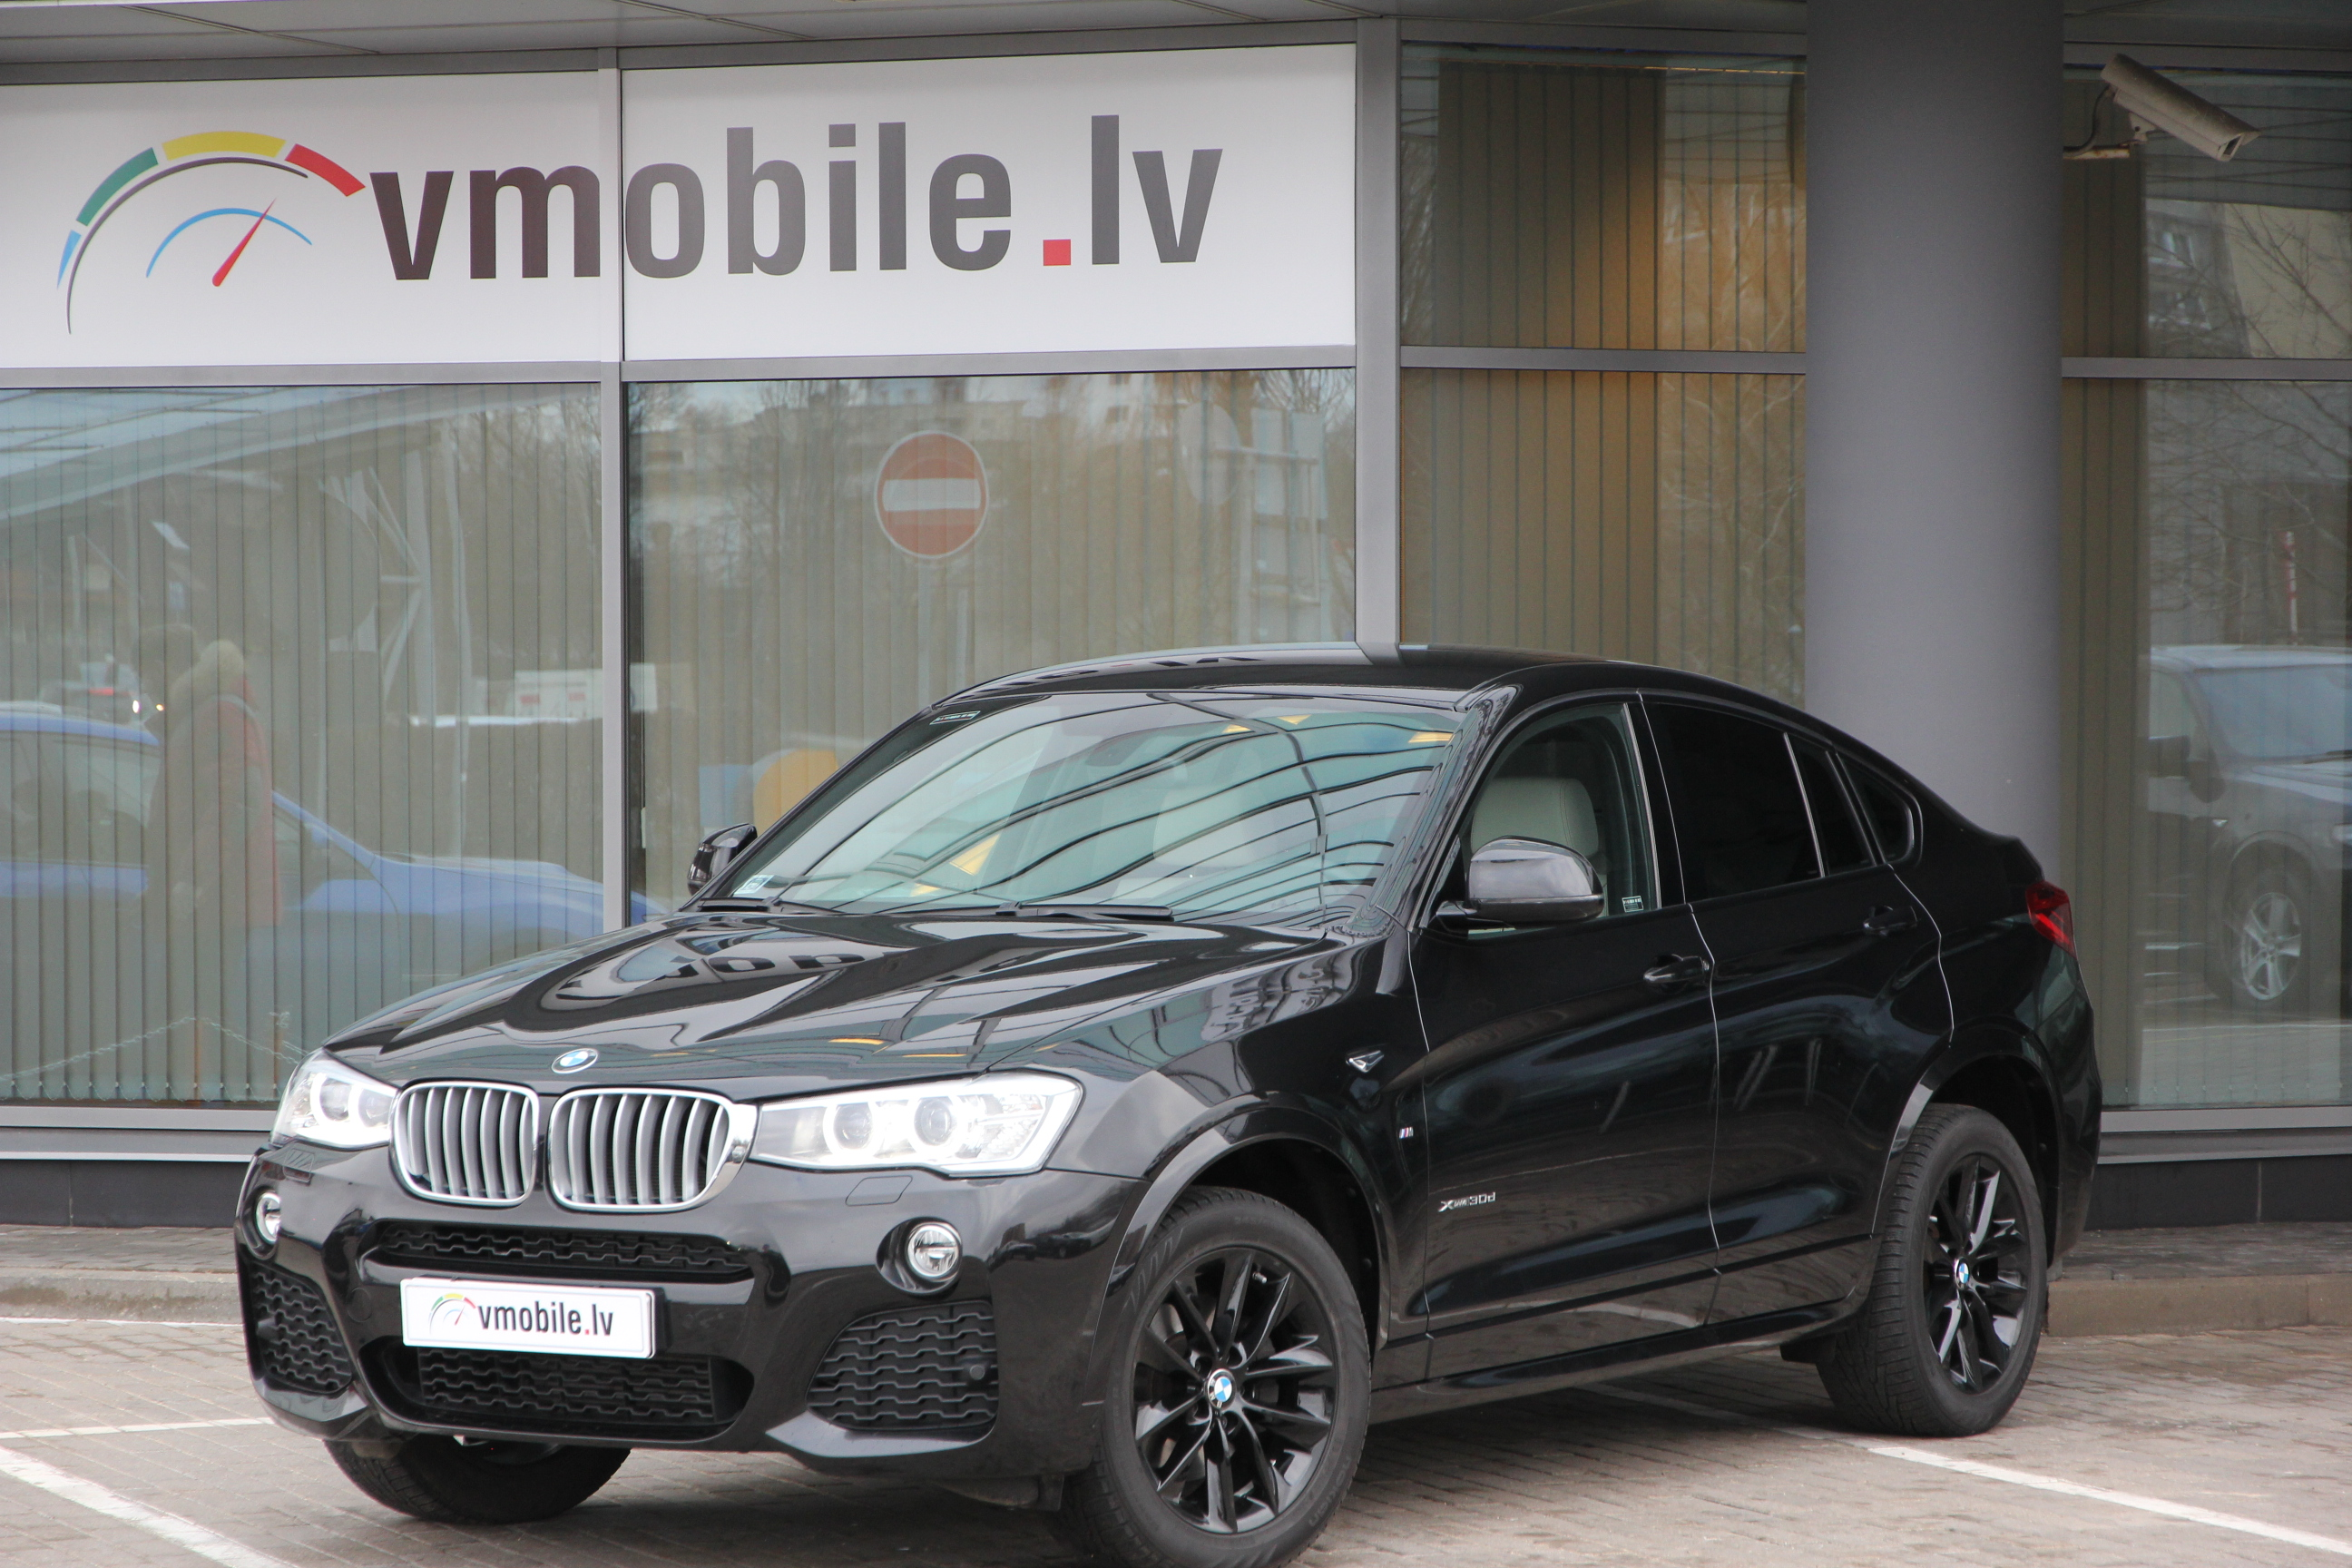 BMW X4 3.0d xdrive 258HP M SPORT PACKAGE